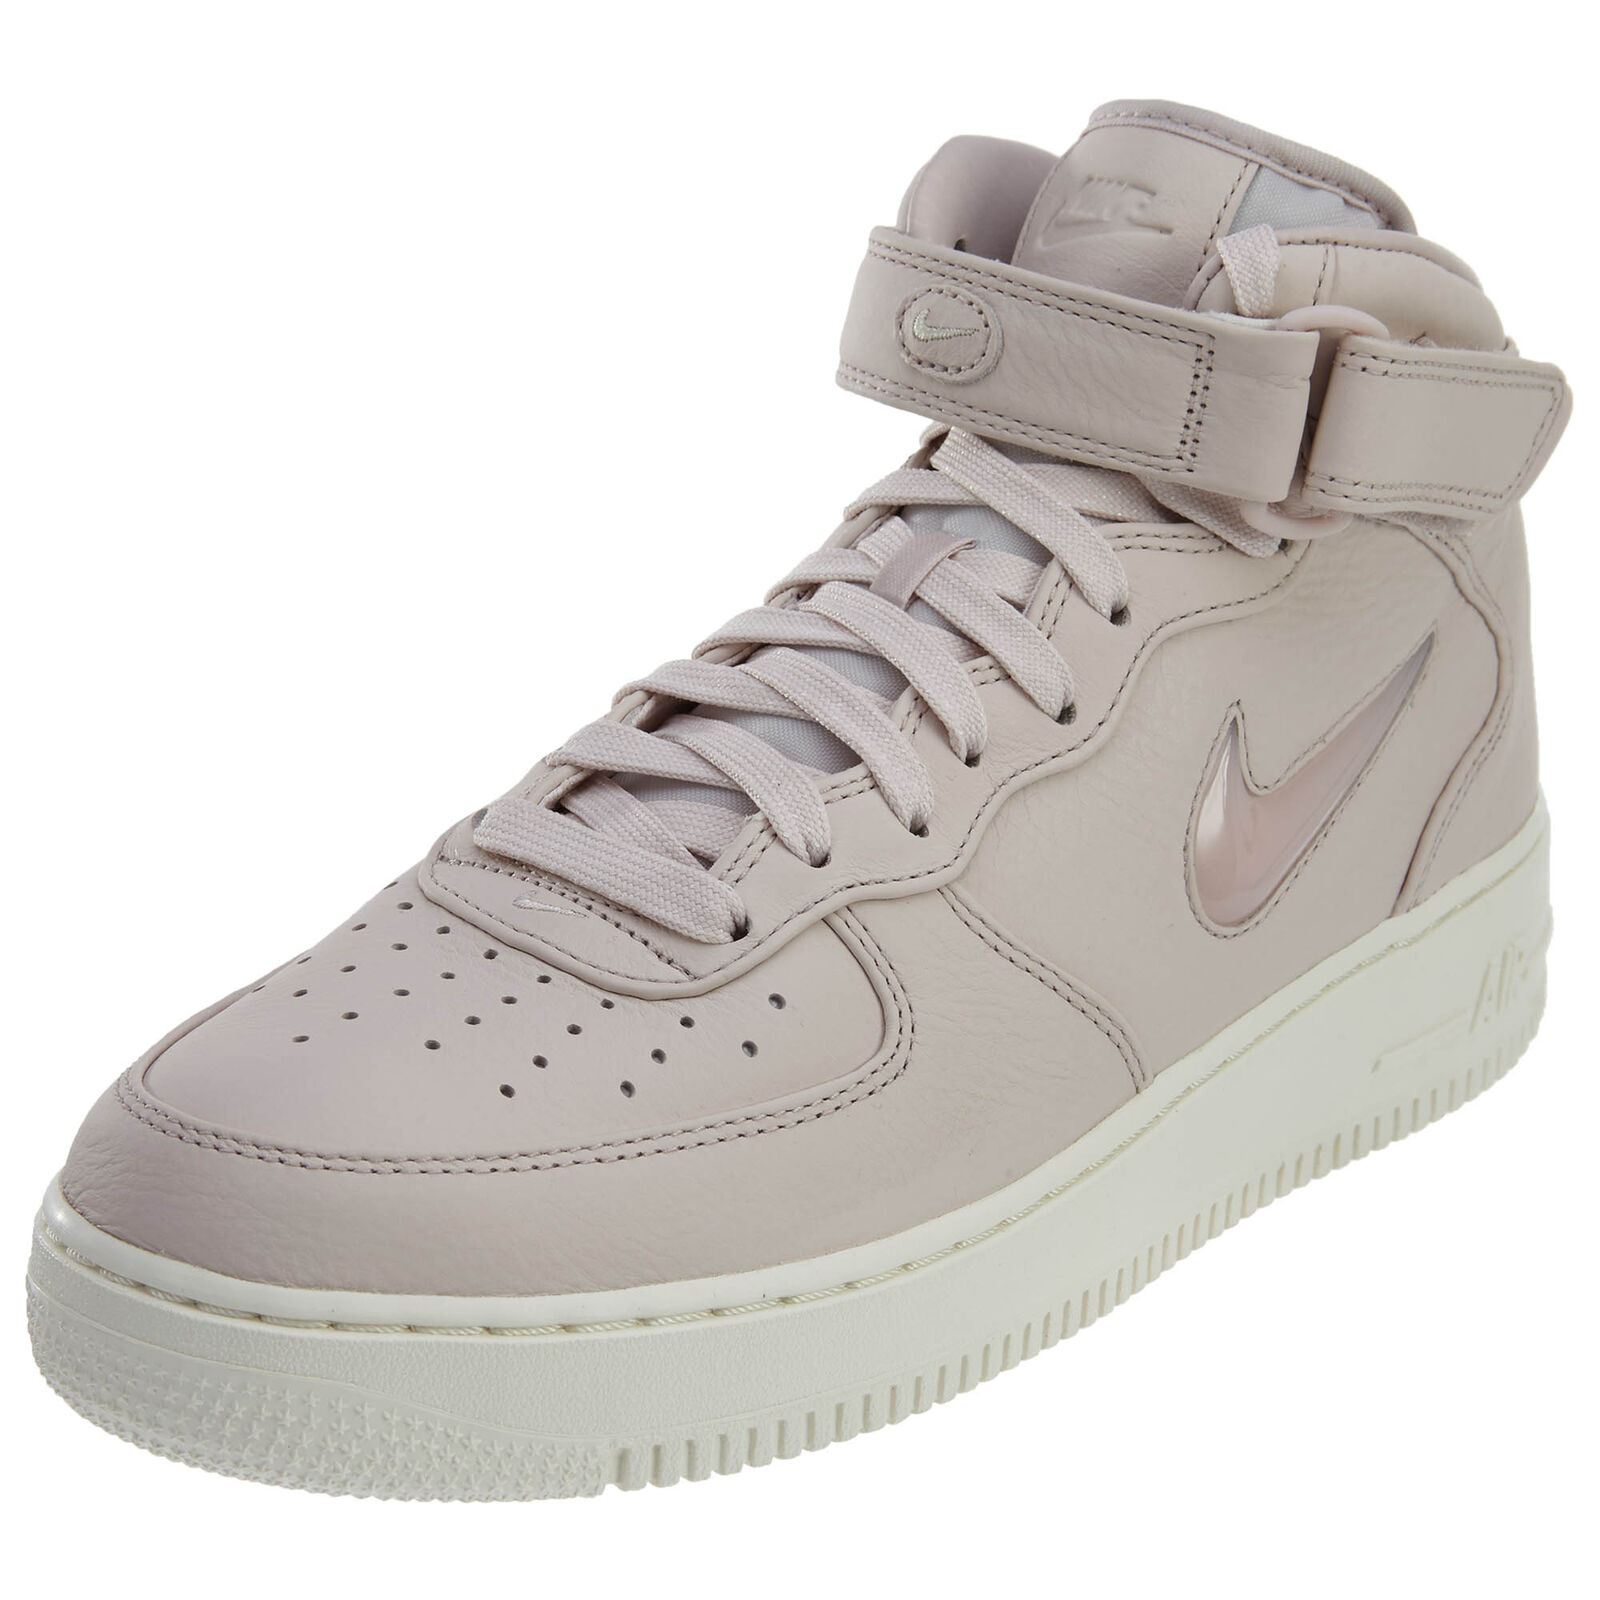 Nike Mens Air Force 1 Mid Mid Mid Retro PRM Running shoes 941913-600 449e14